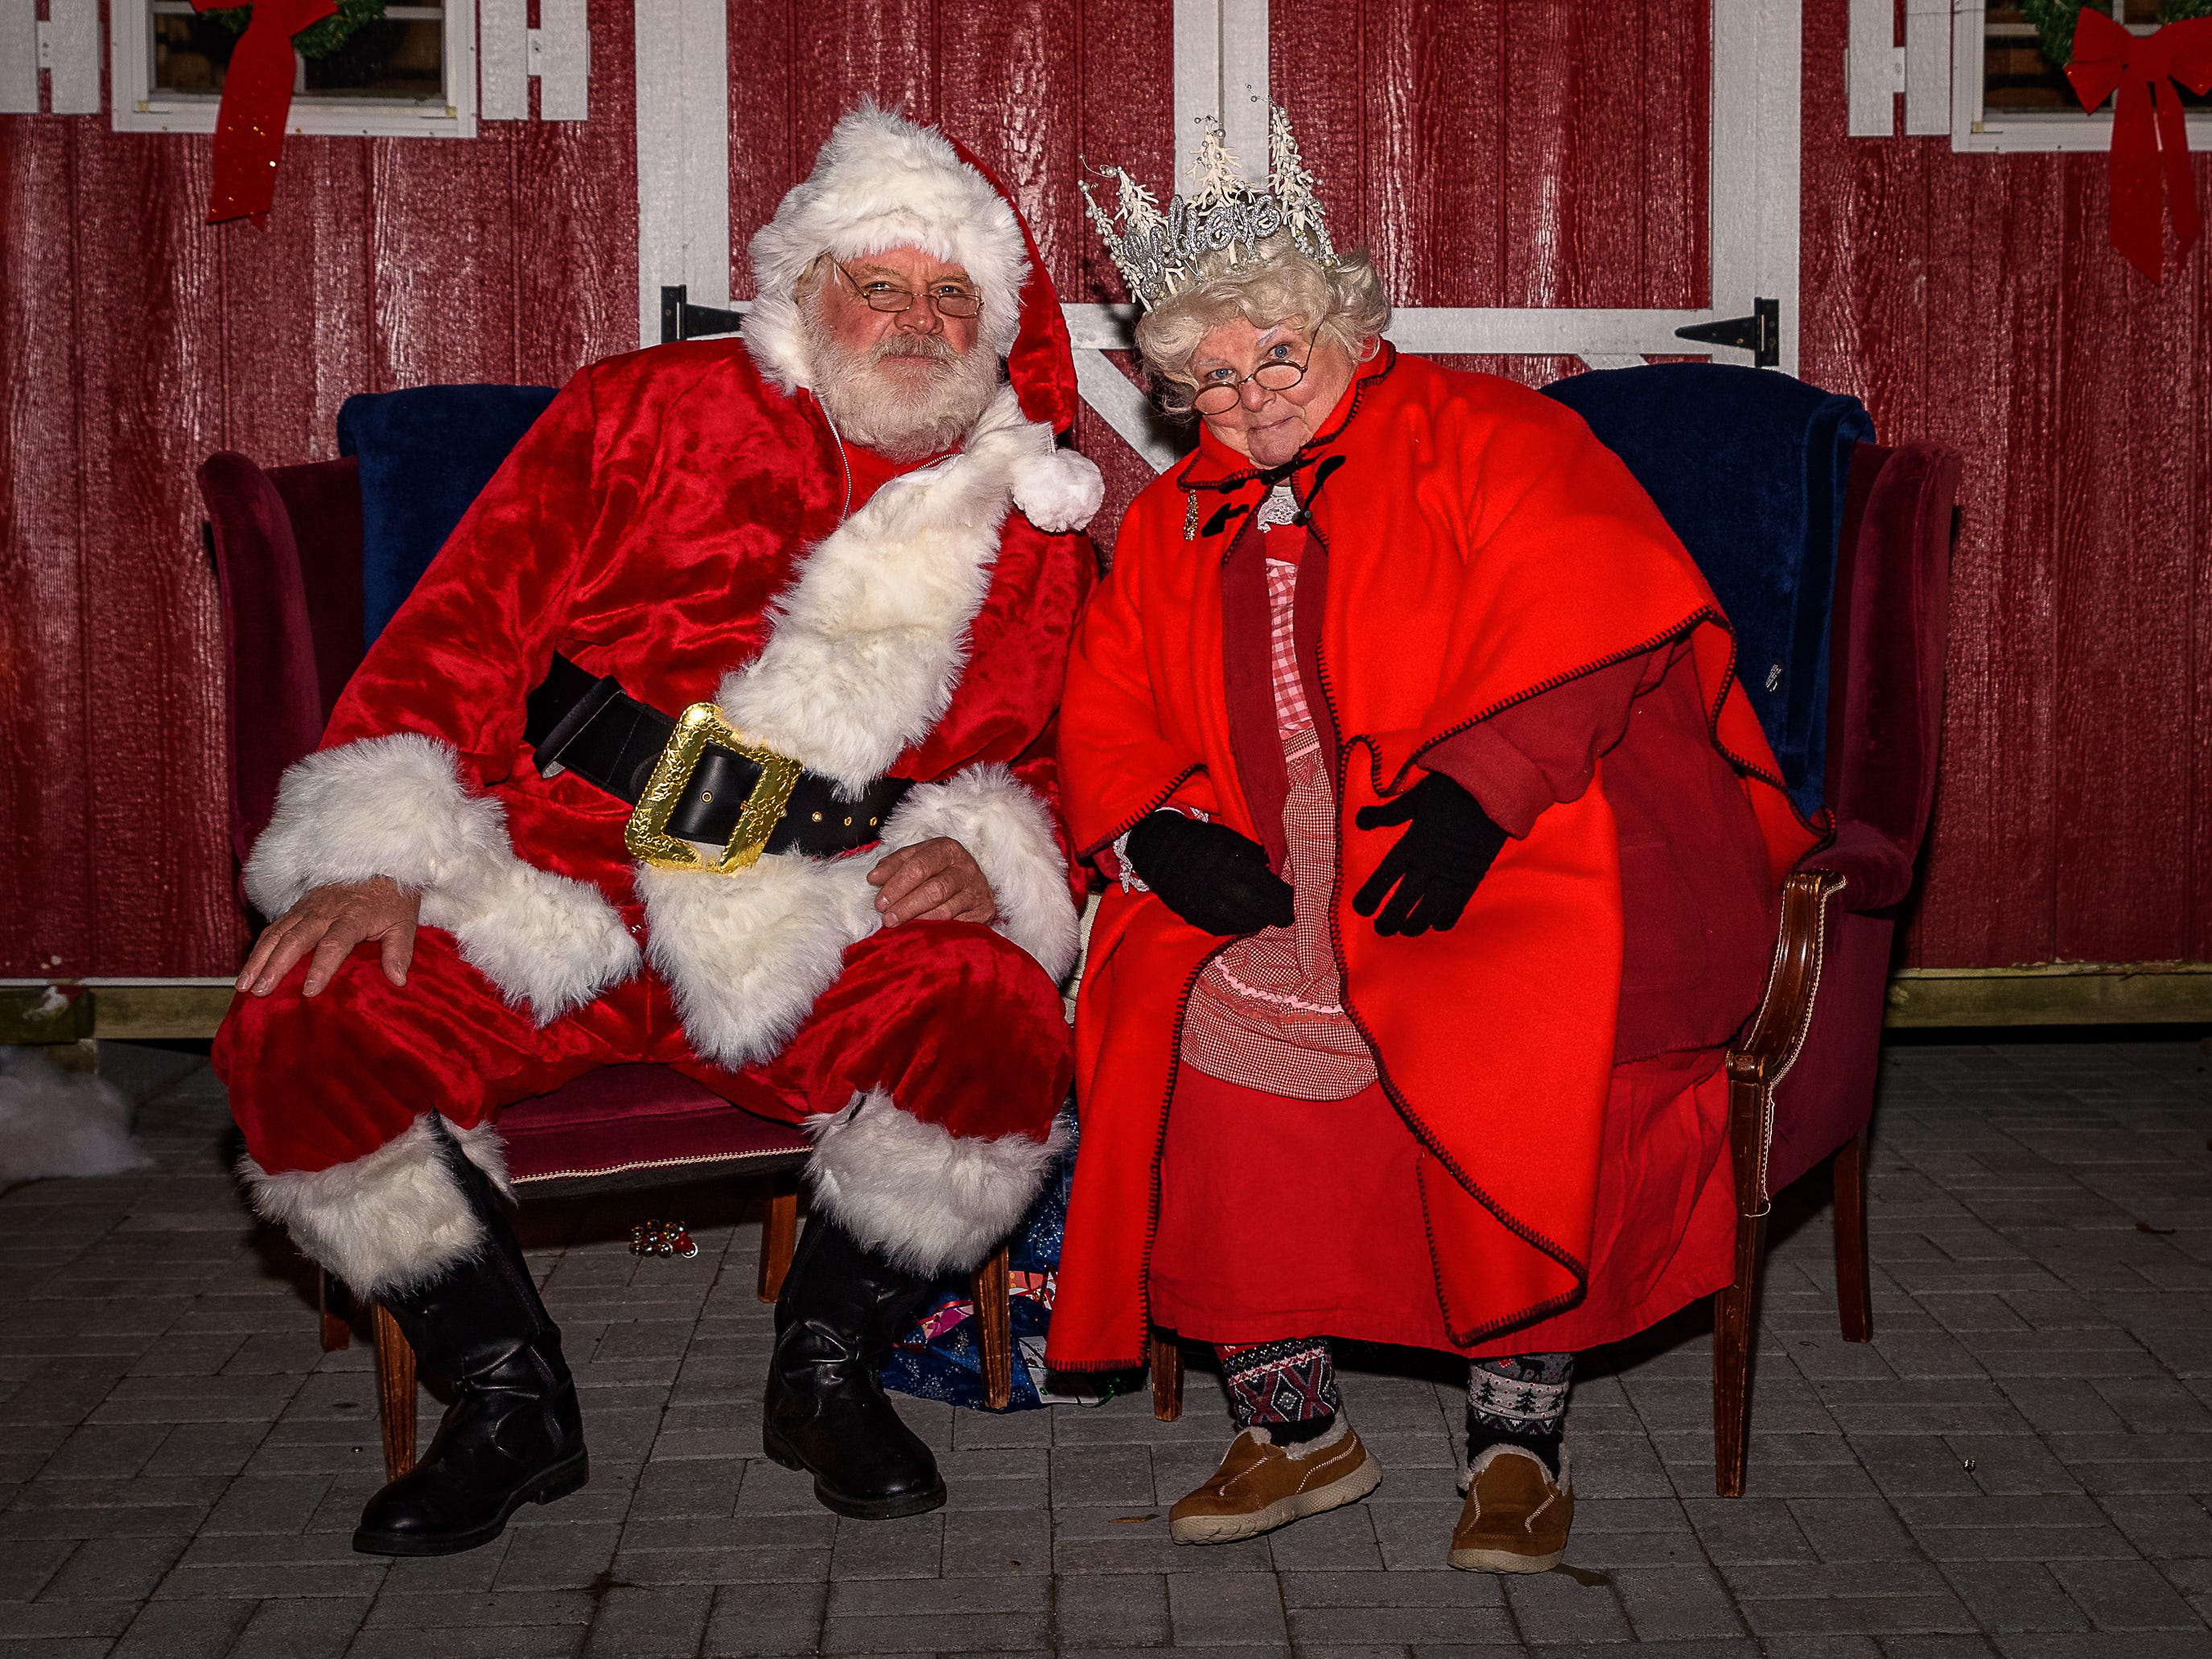 Santa and Mrs Claus hold court at the first Festive Friday in downtown Cape Charles on Nov. 23. The town hosts fice nights of festive fun leading to Christmas on Fridays, Nov. 30, Dec. 7, Dec. 15 and Dec. 21. Enjoy music, visits with Santa, caroling, carriage rides, Christmas movies and more at these events.